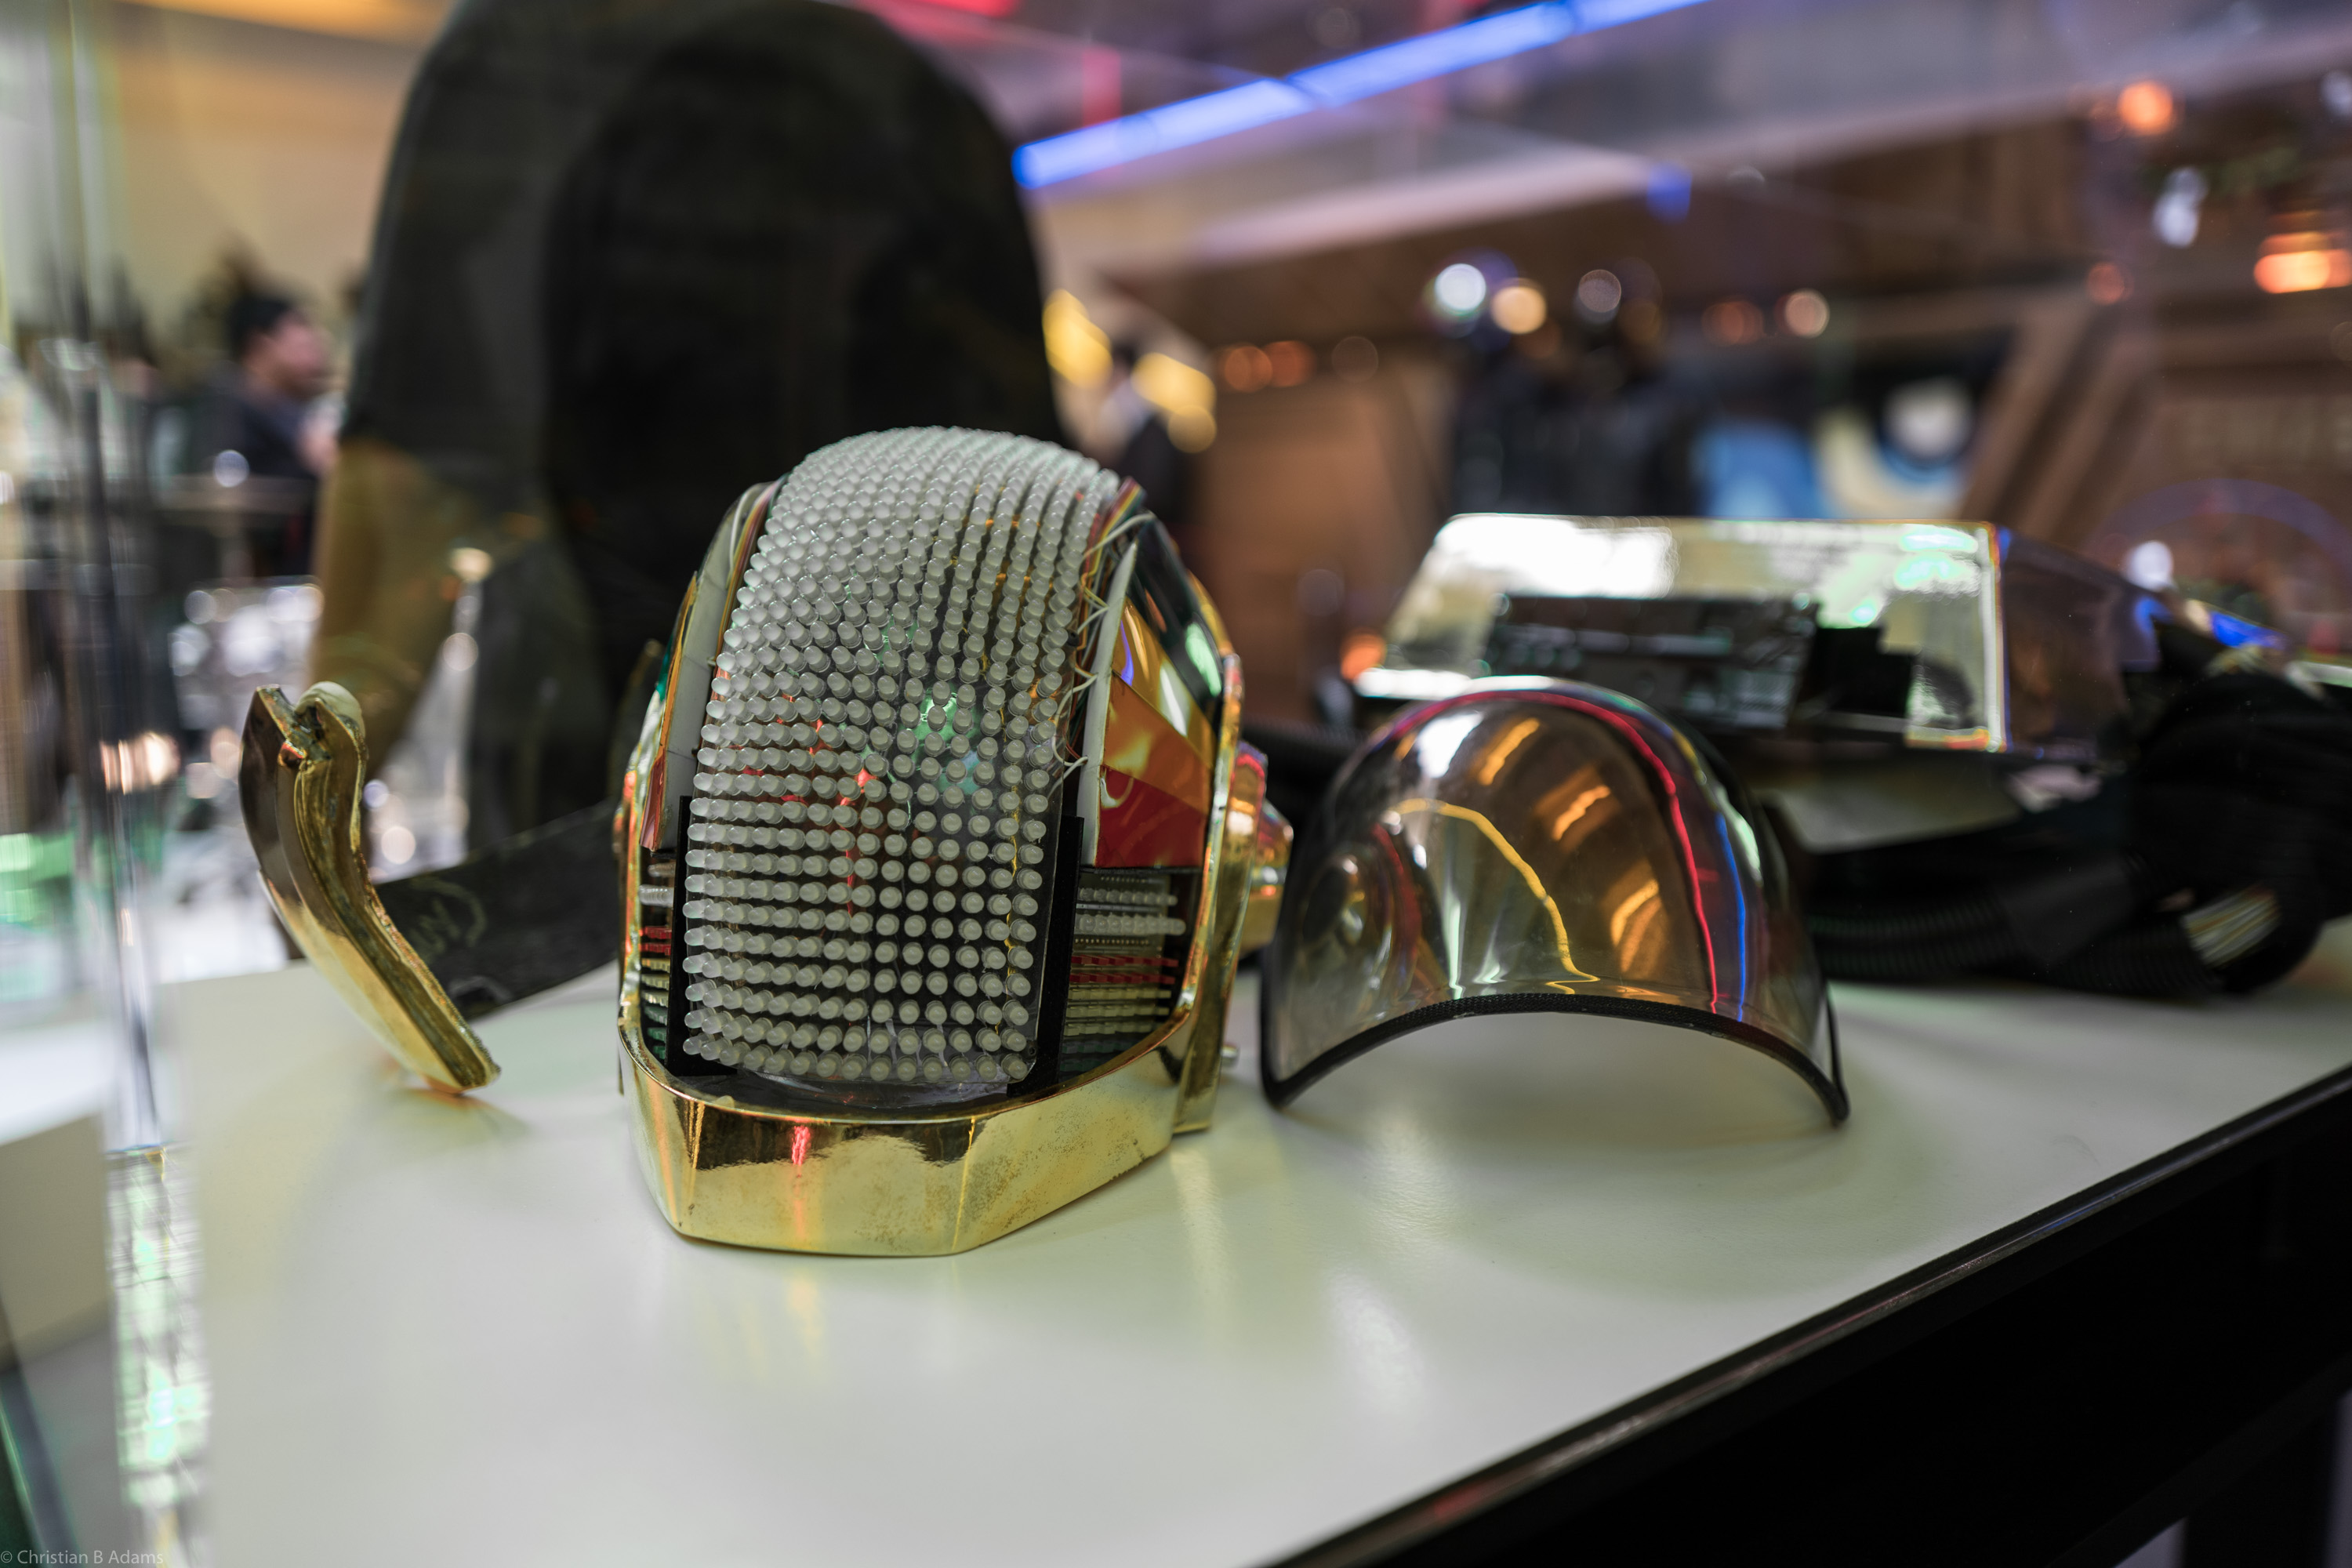 Guy-Manuel de Homem-Christo's Discovery era robot helmet at the Daft Punk Pop Up at Maxfield Gallery Los Angeles in February of 2017.